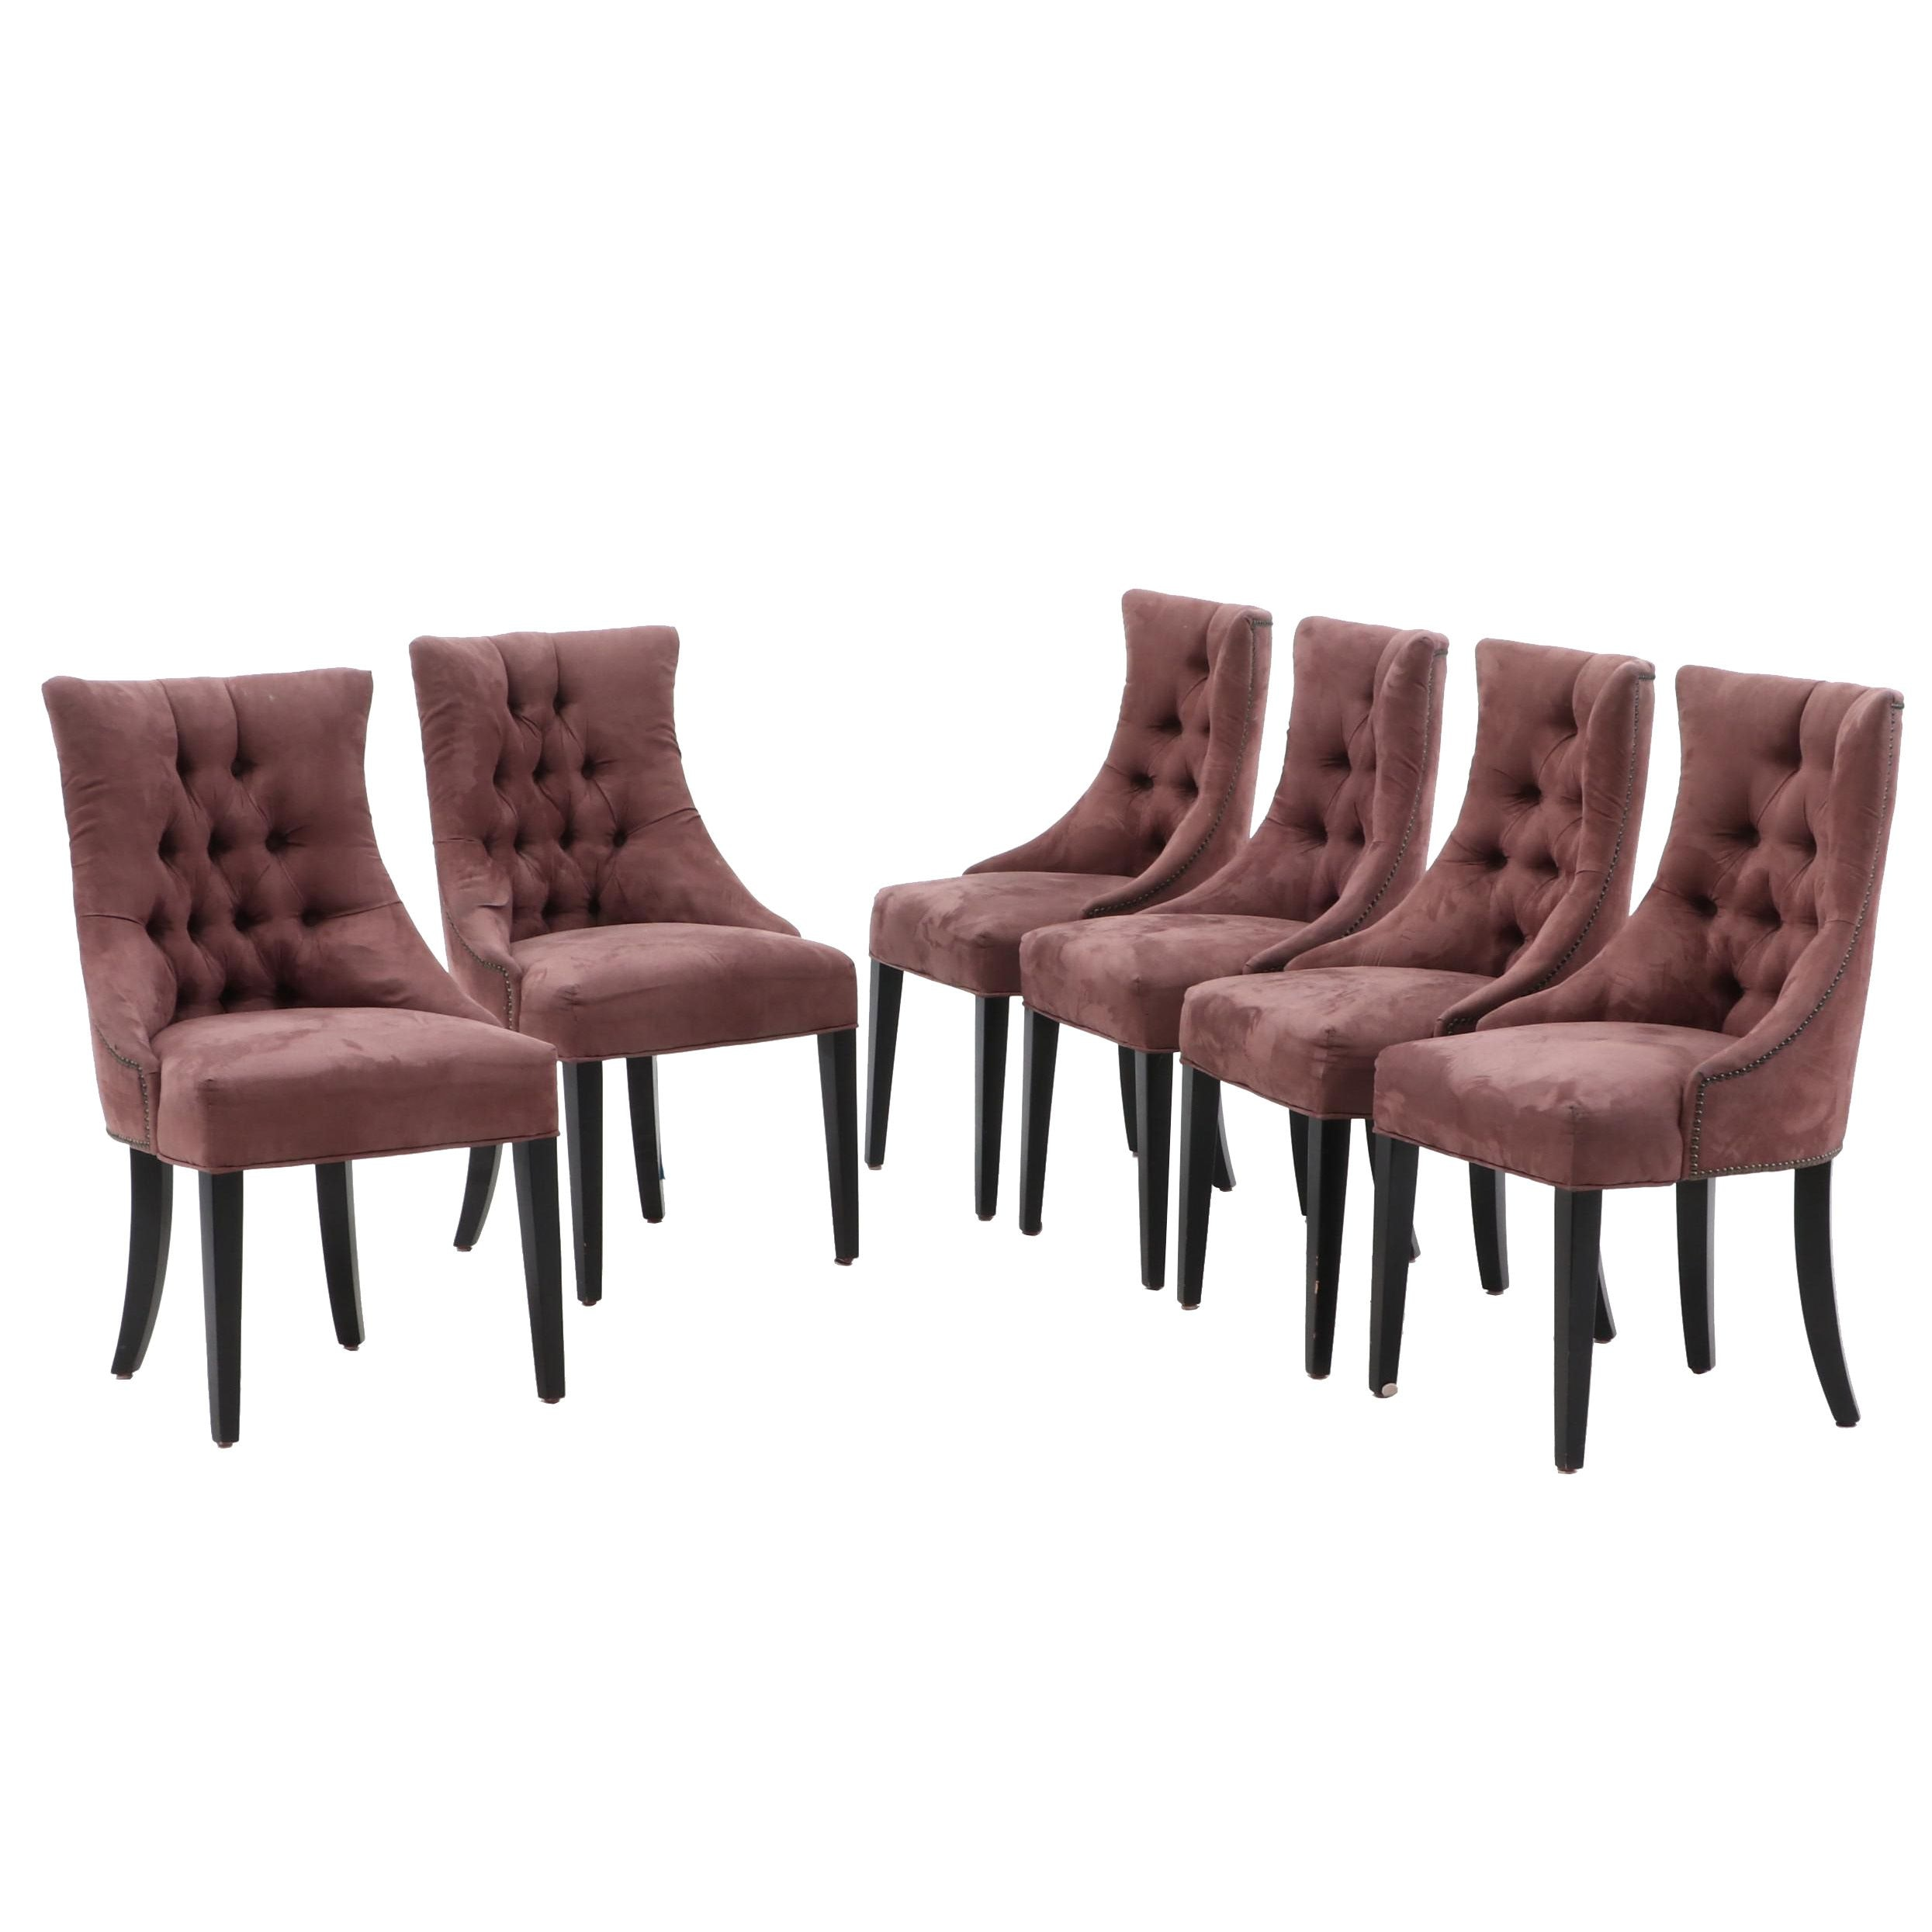 Six Upholstered Concave Tufted Back Side Chairs